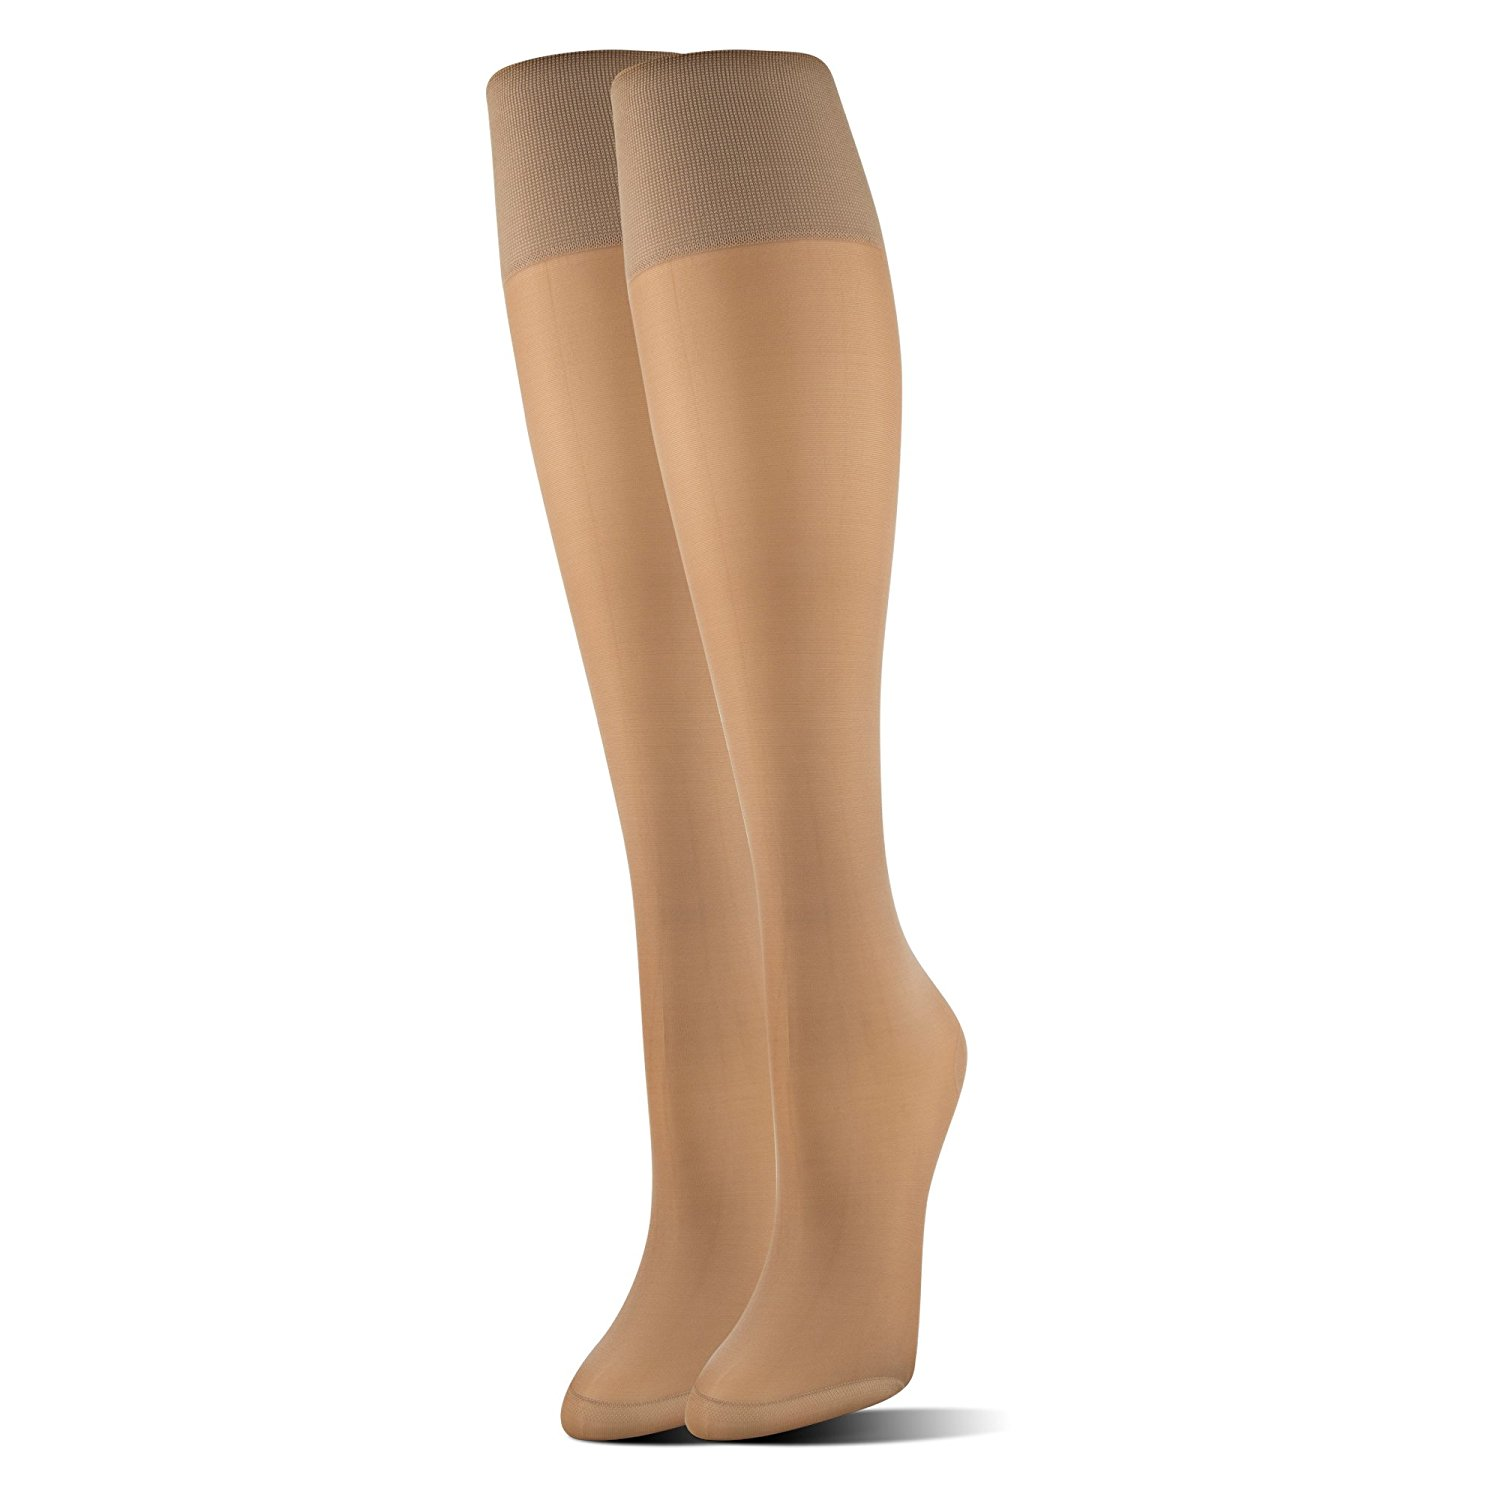 7a18318f0f Get Quotations · MediPeds Women's Mild Compression Support Knee High Socks,  ...